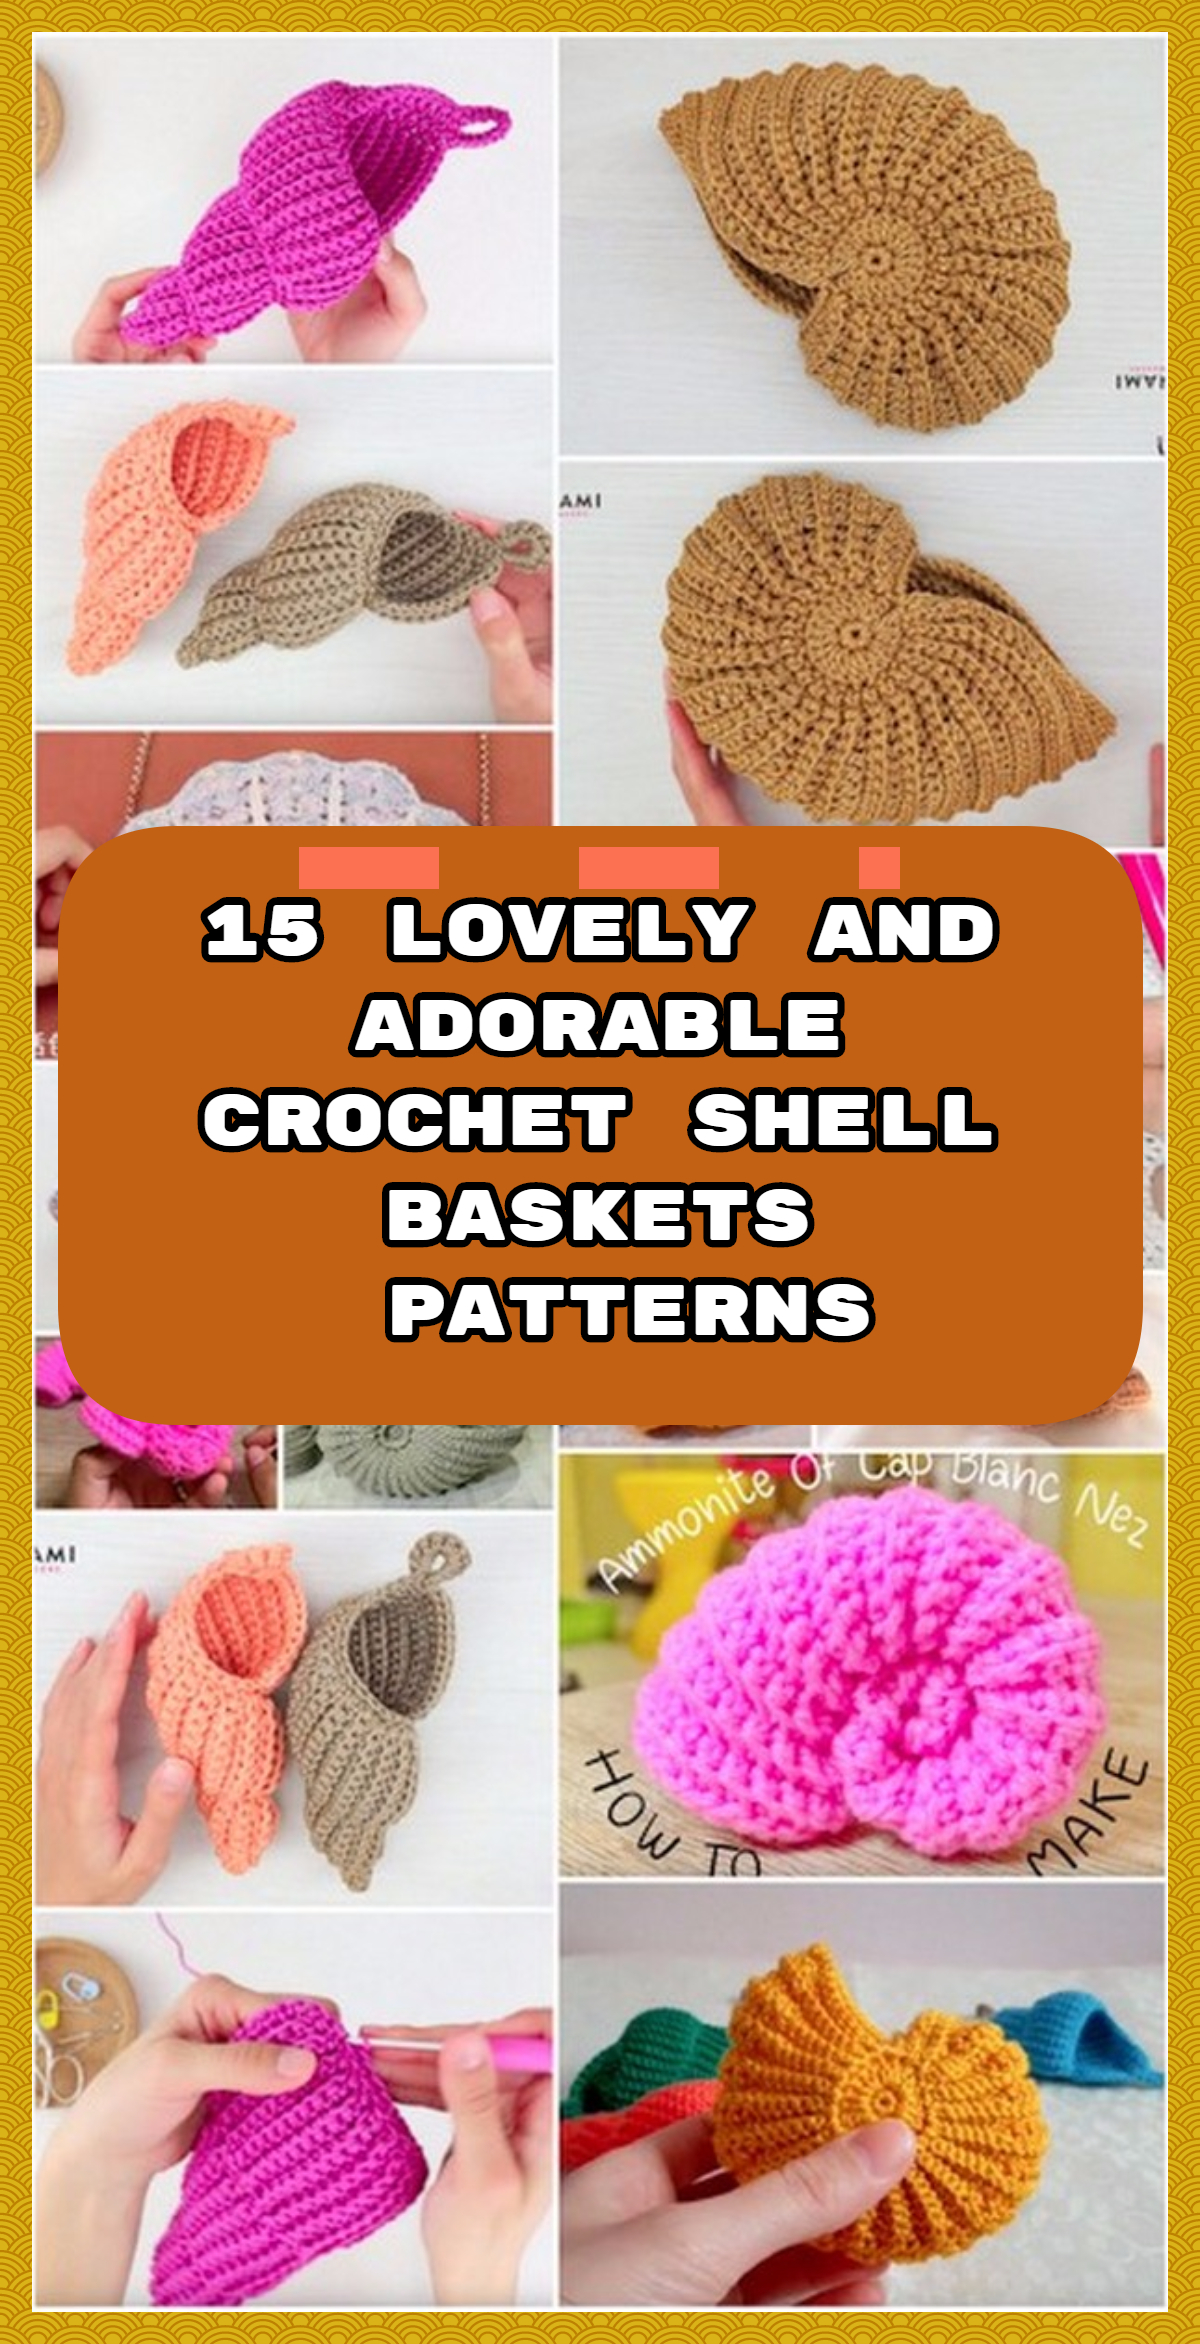 15 Lovely and Adorable Crochet Shell Baskets Patterns